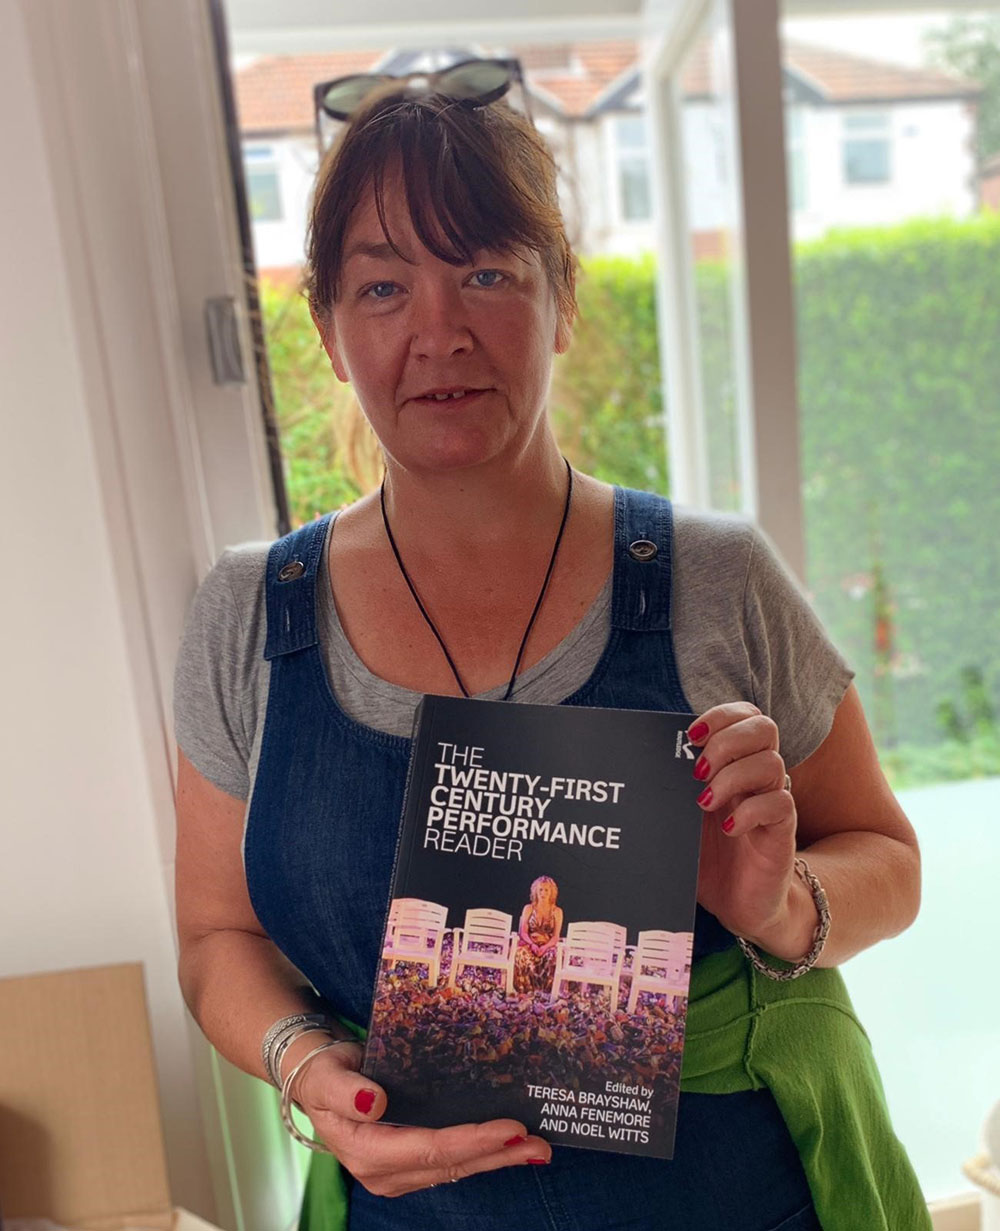 Teresa Brayshaw holding a copy of The 21st Century Performance Reader